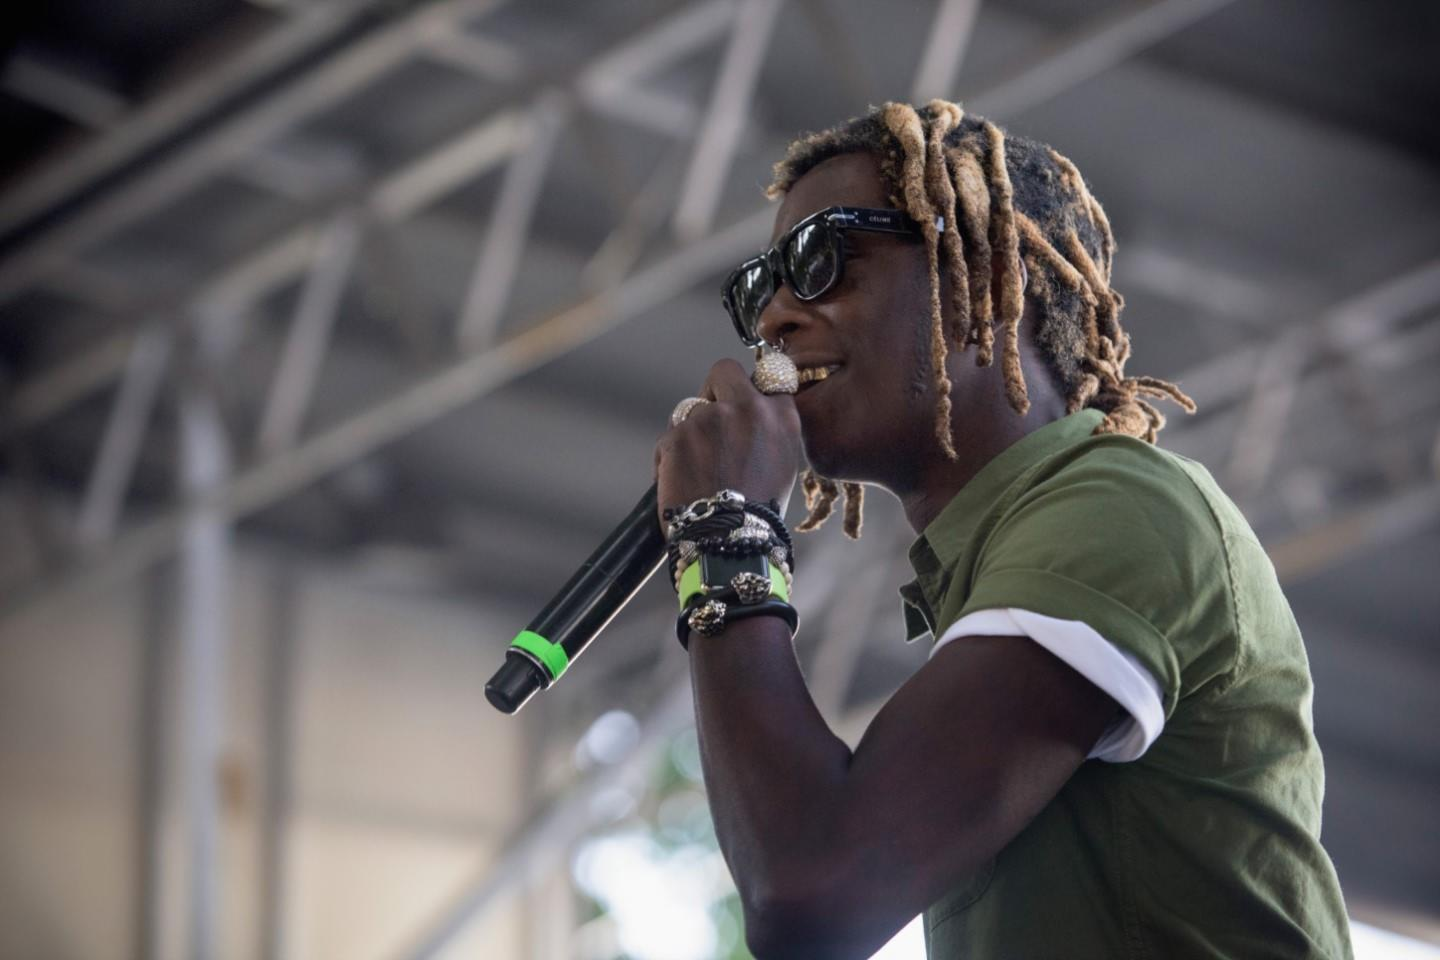 Young Thug Tour 2020 Young Thug Tickets | Young Thug Tour Dates 2020 and Concert